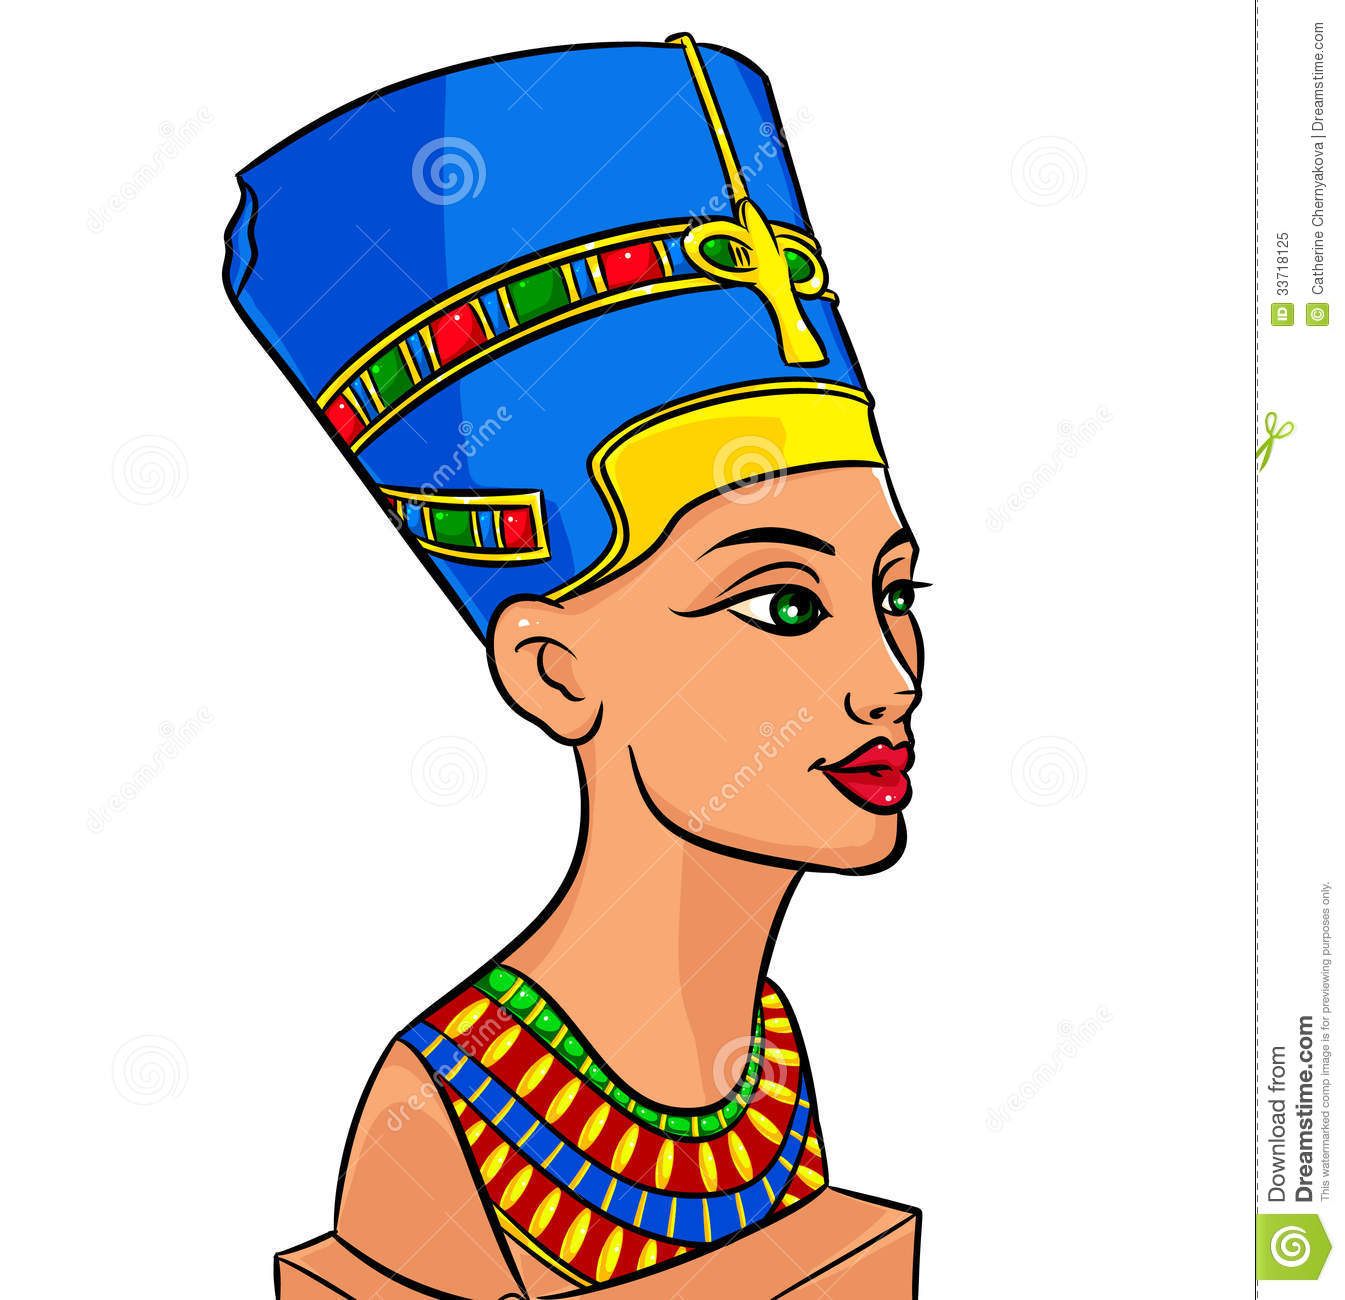 Free Stock Photo  Queen Of Egypt Nefertiti Cartoon  Image  33718125